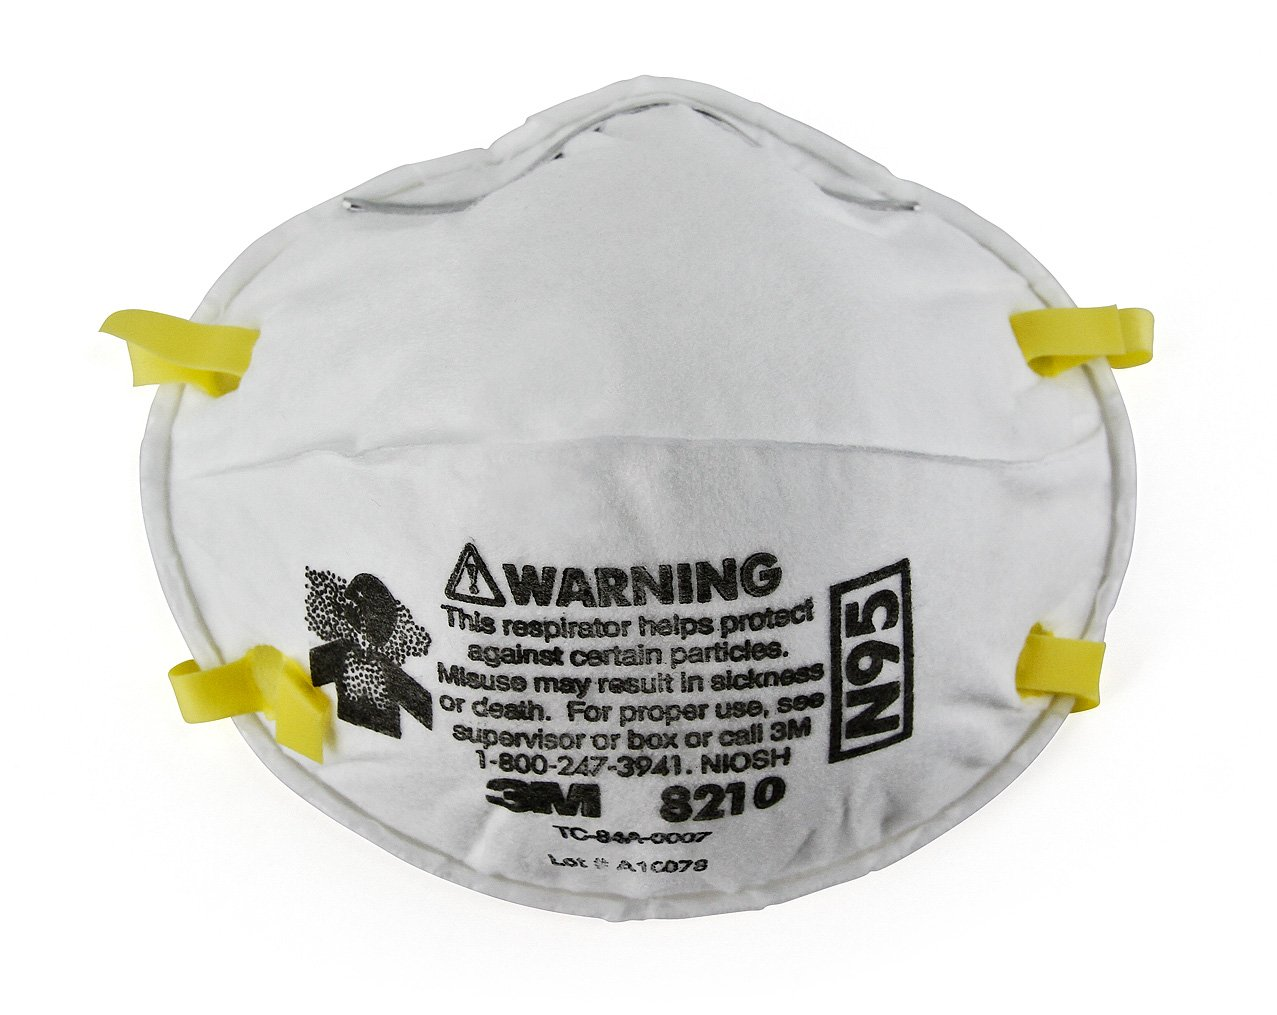 3M Particulate Respirator 8210, N95 (Pack of 20) by 3M Personal Protective Equipment (Image #1)